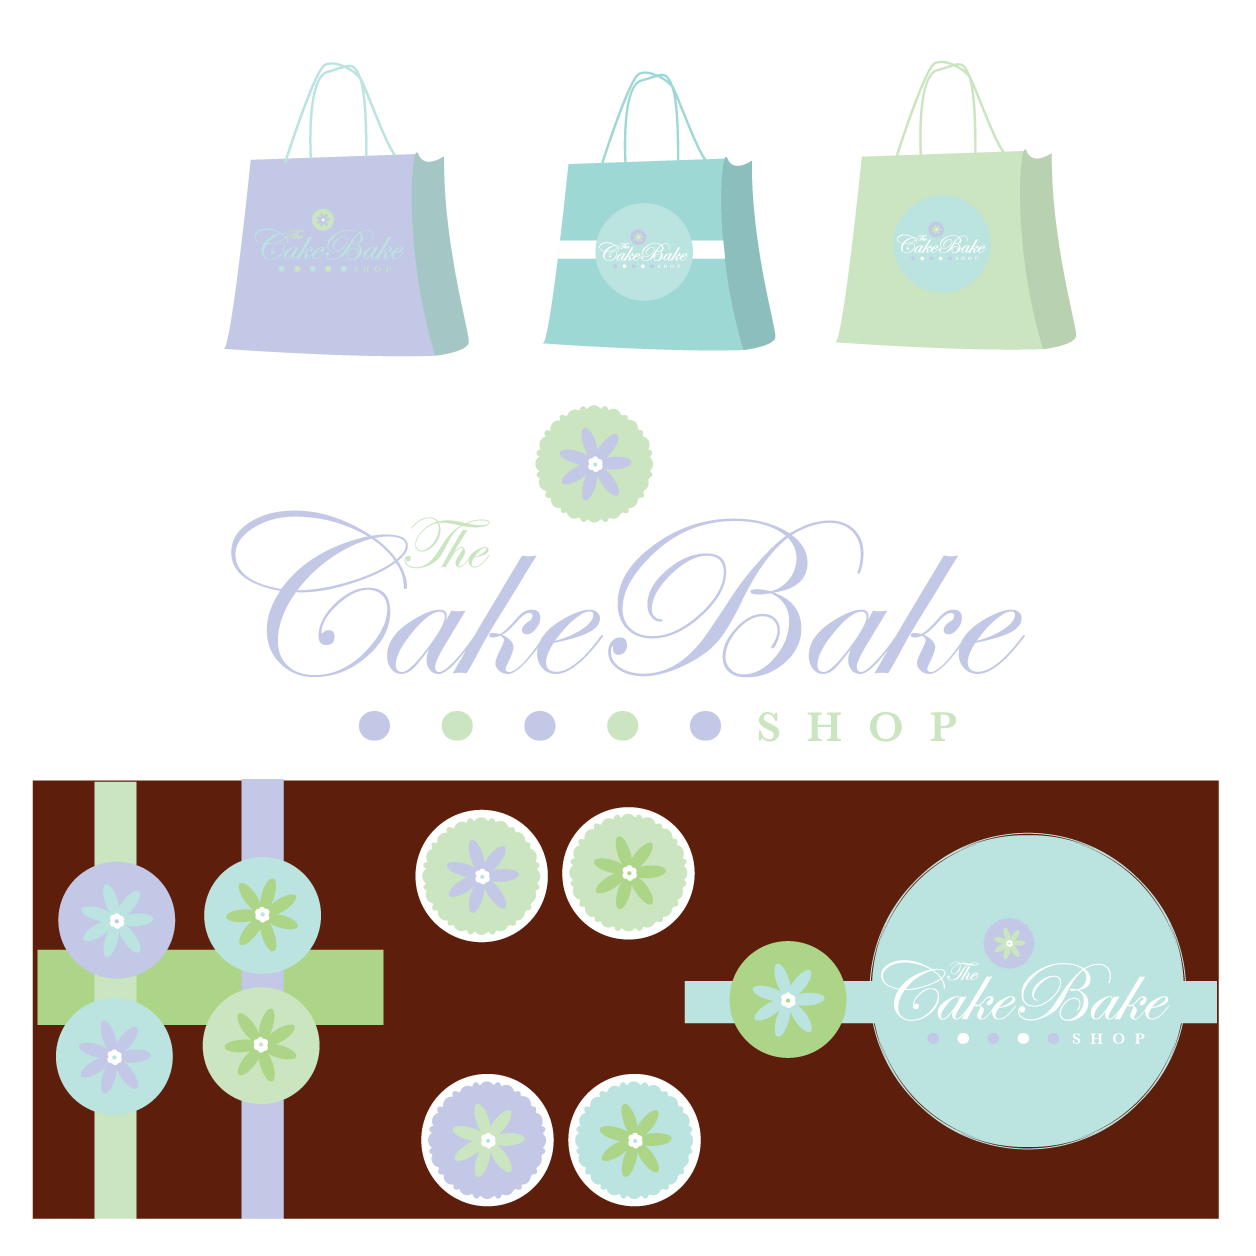 Help The Cake Bake Shop with a new logo